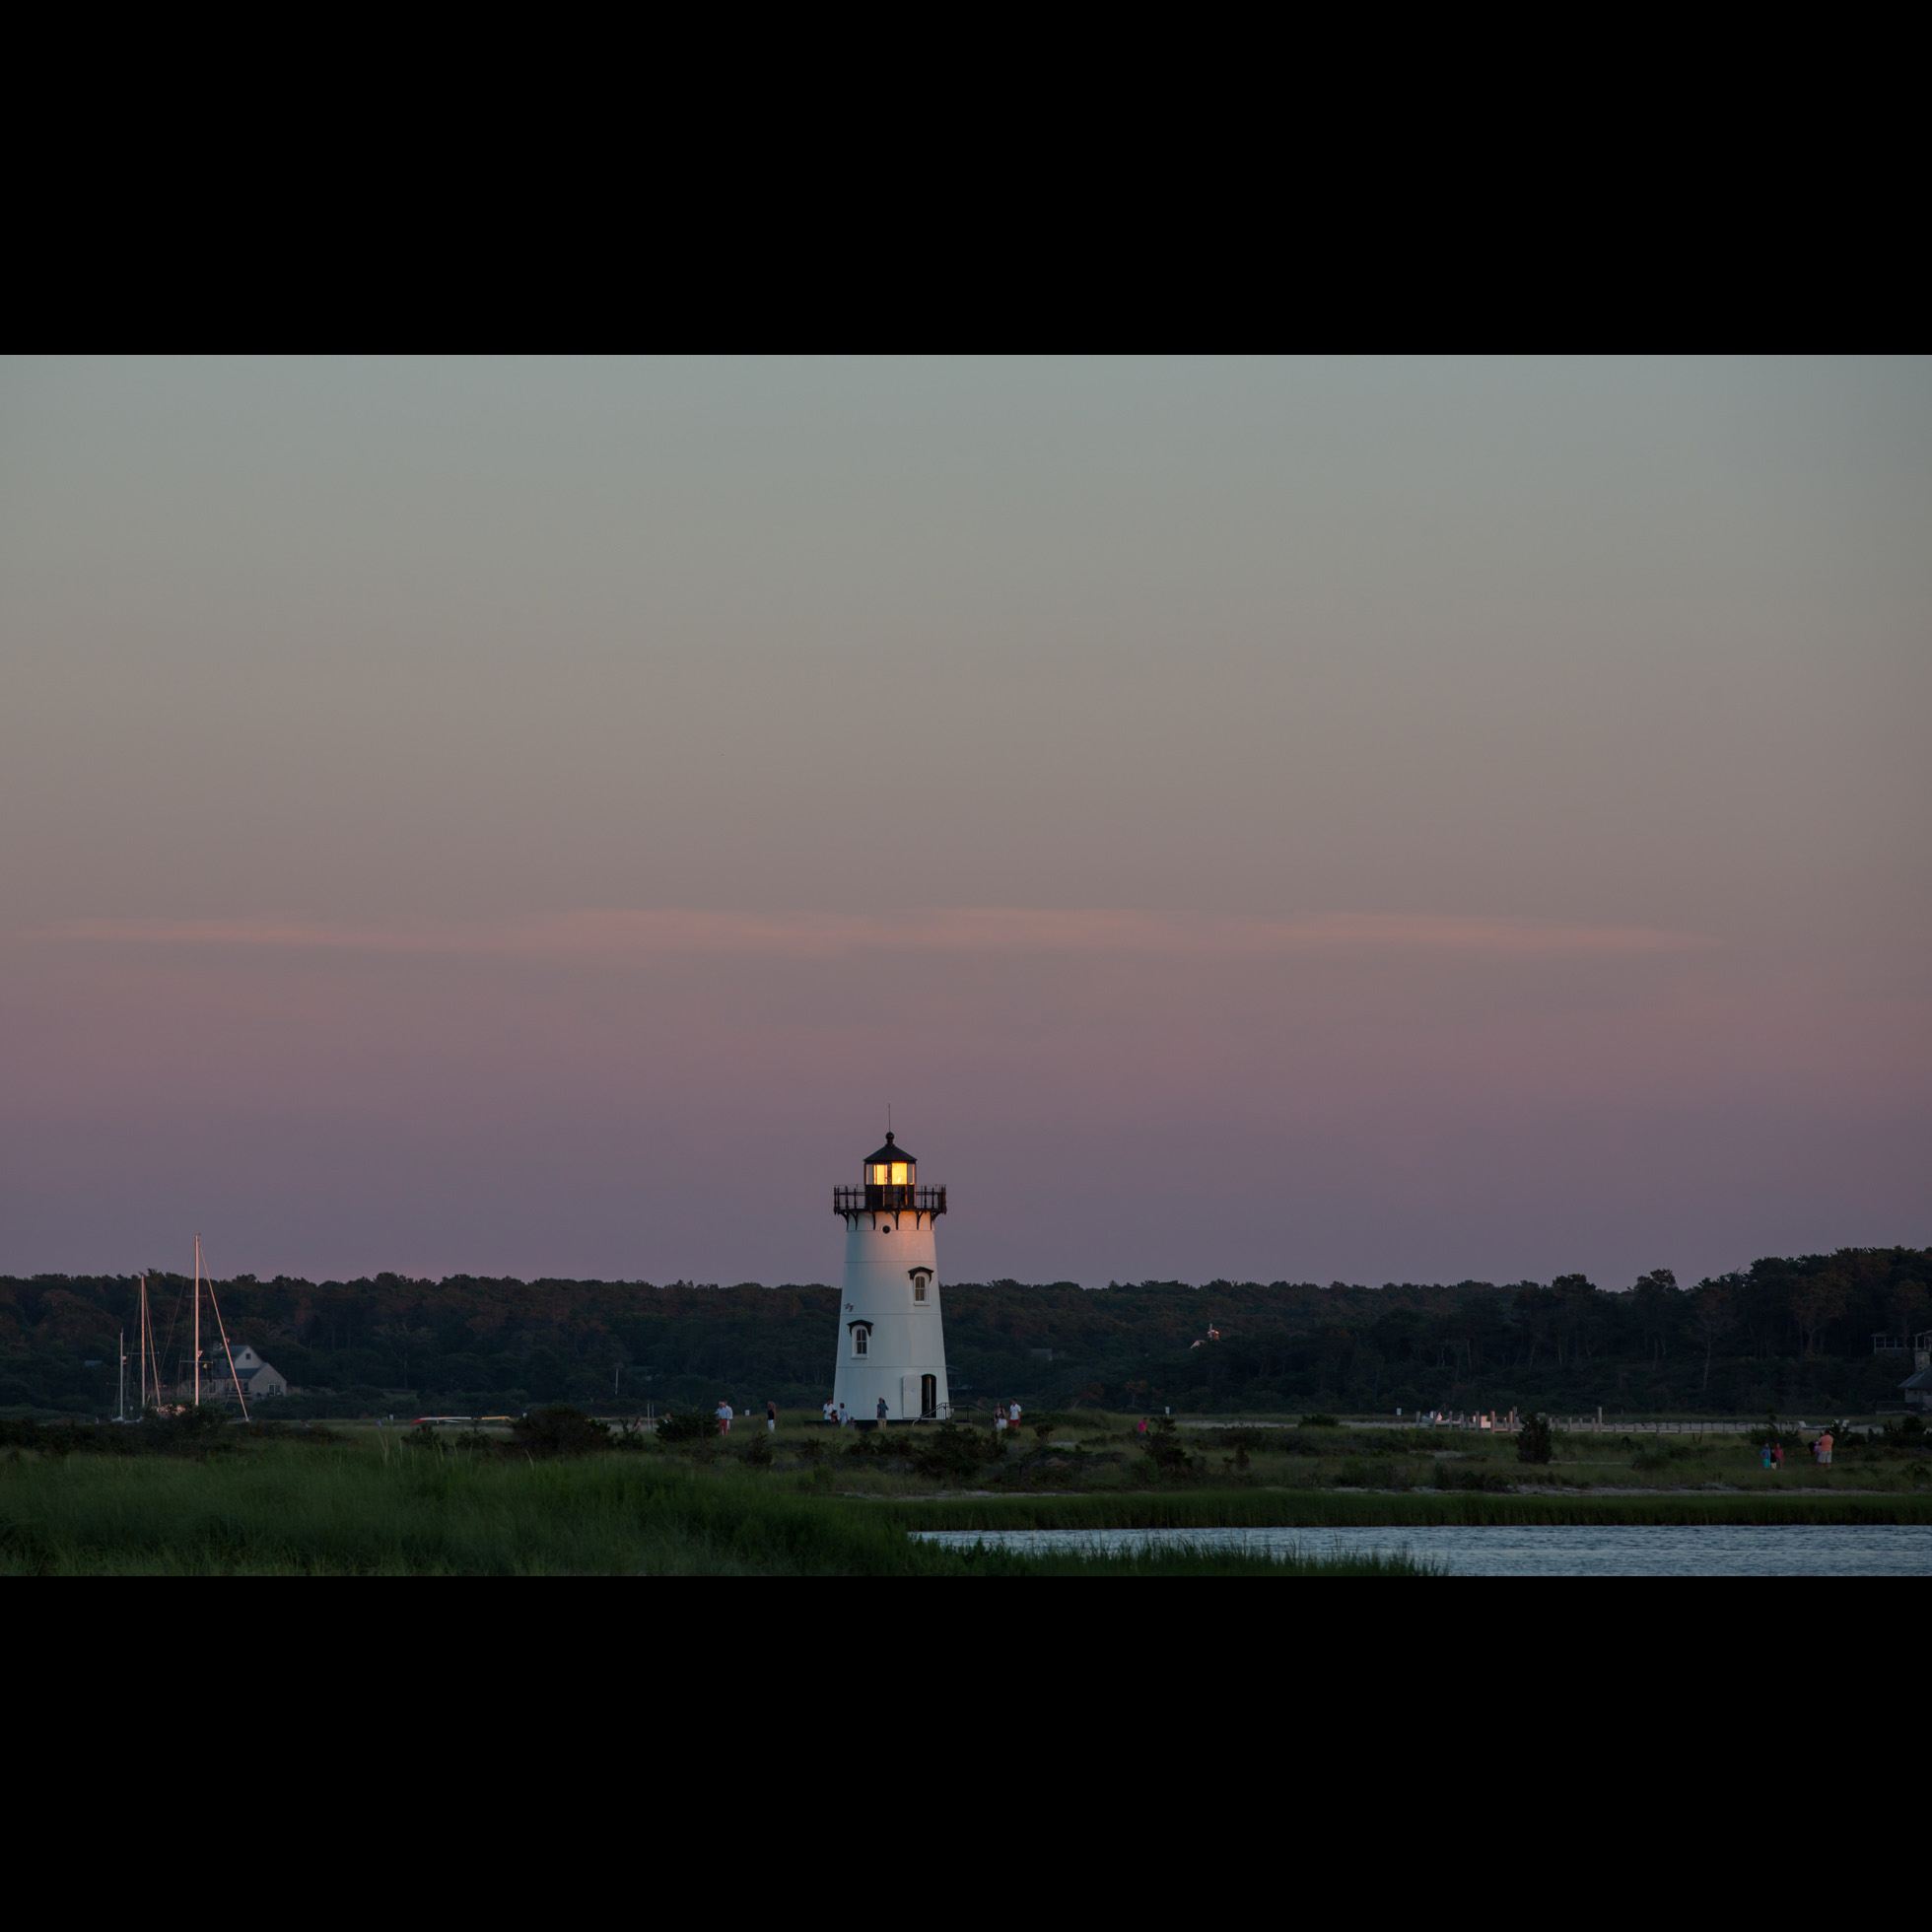 7.31 EDGARTOWN LIGHTHOUSE